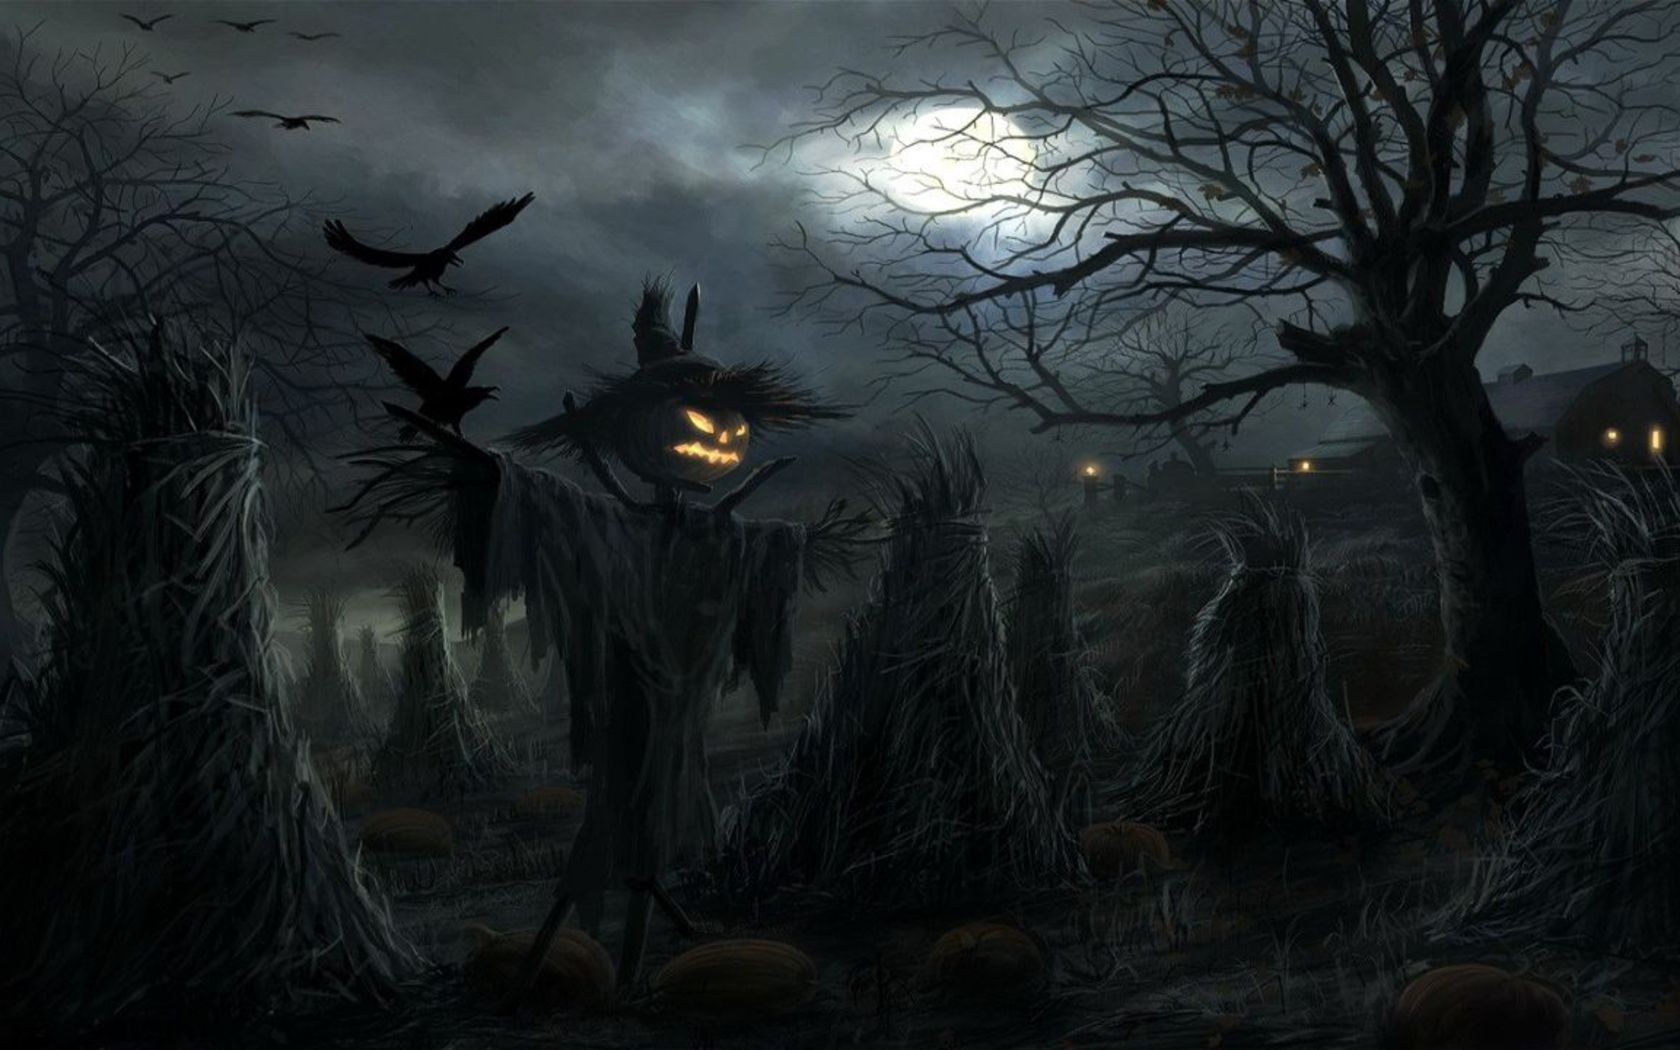 17+ images about Halloween Backgrounds on Pinterest | Iphone 5